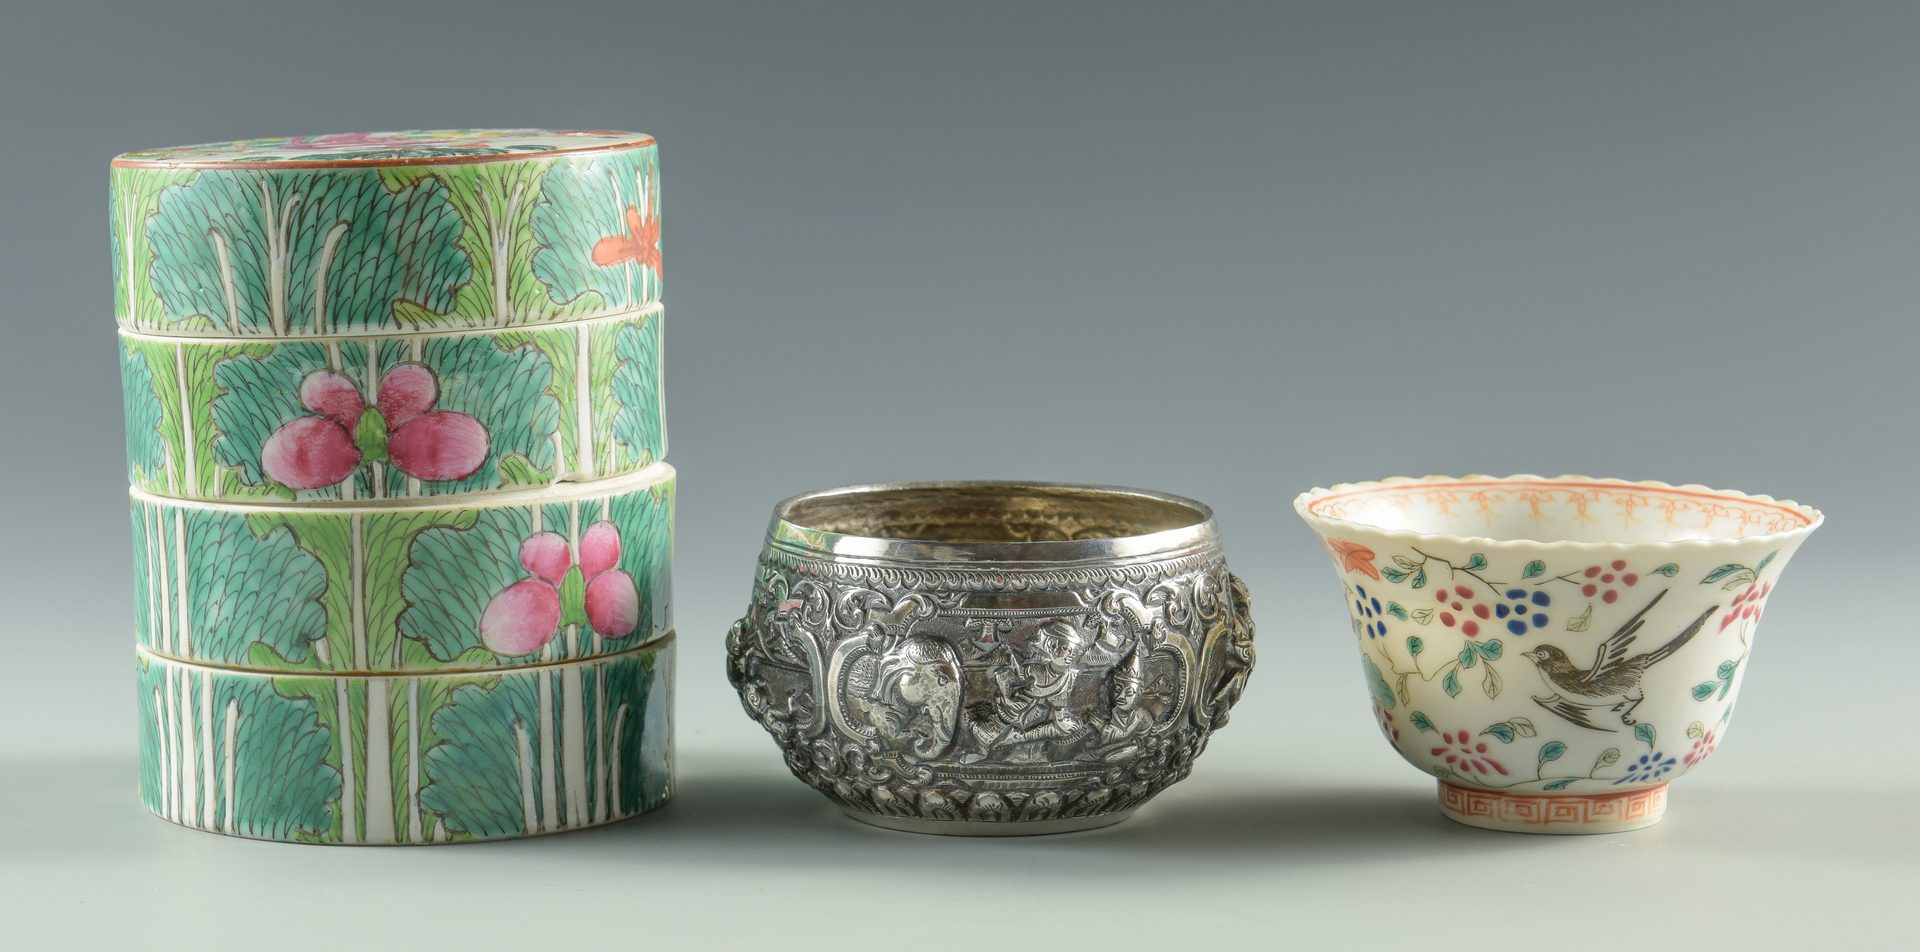 Lot 127: Asian Silver and Porcelain bowls, 3 pcs